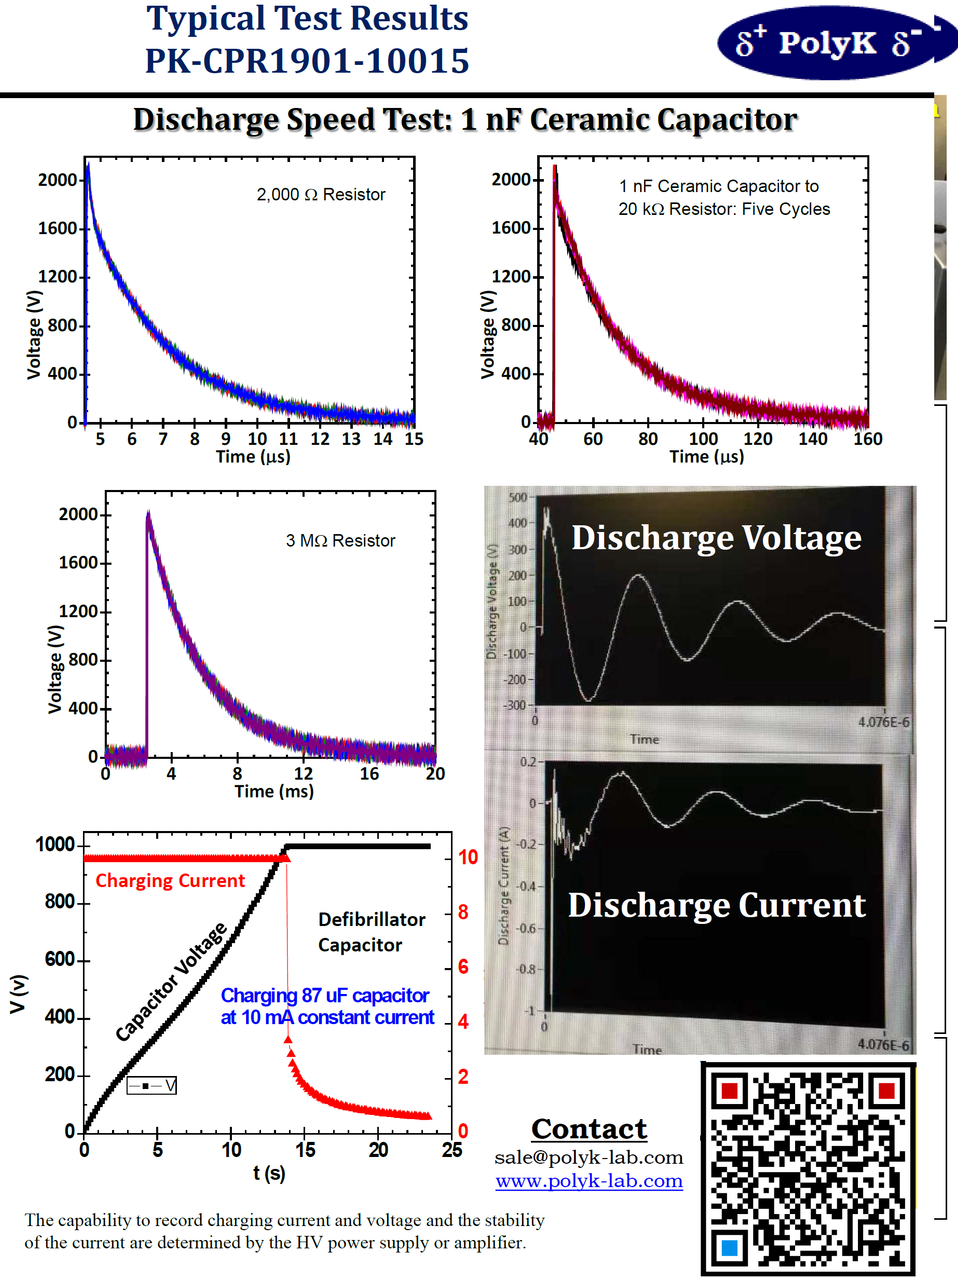 Capacitor Dielectric Materials Charge - Discharge Test System